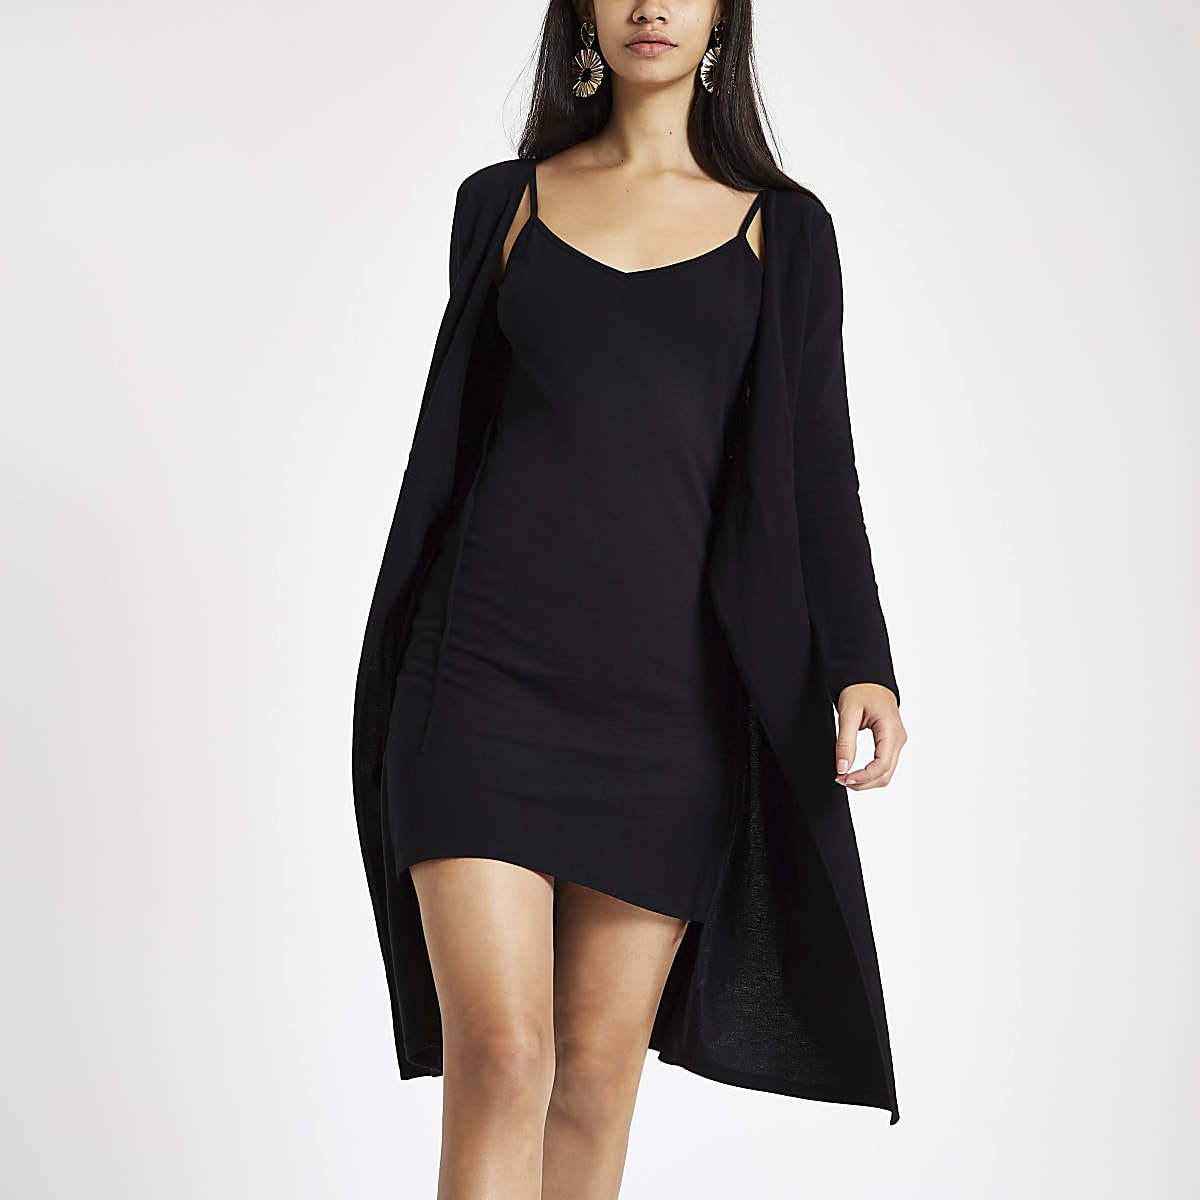 Black wrap tie dress